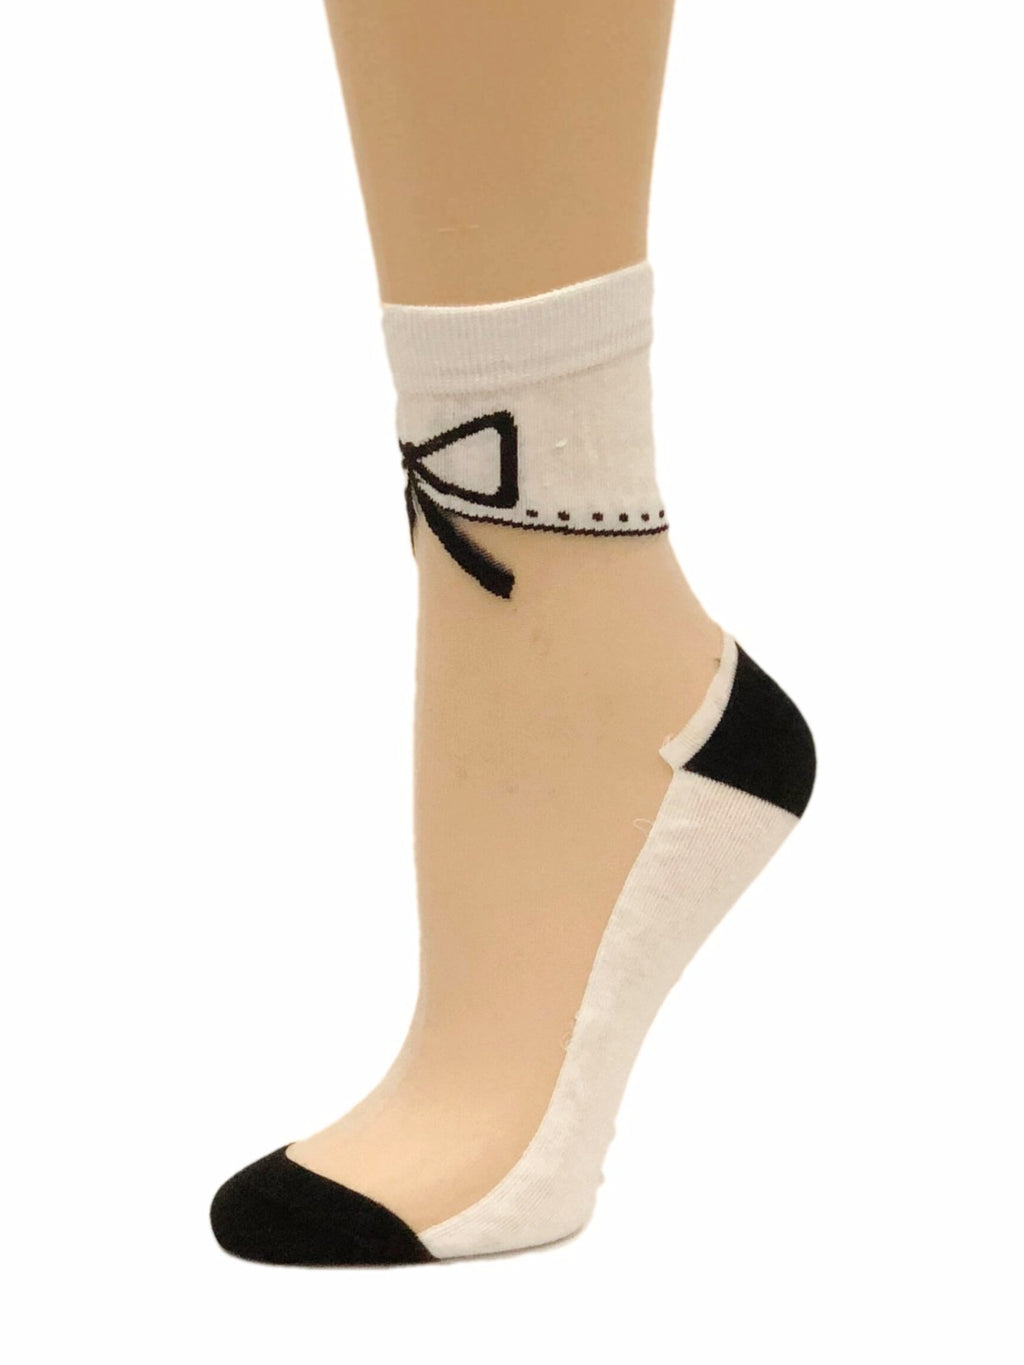 Bow White Sheer Socks - Global Trendz Fashion®